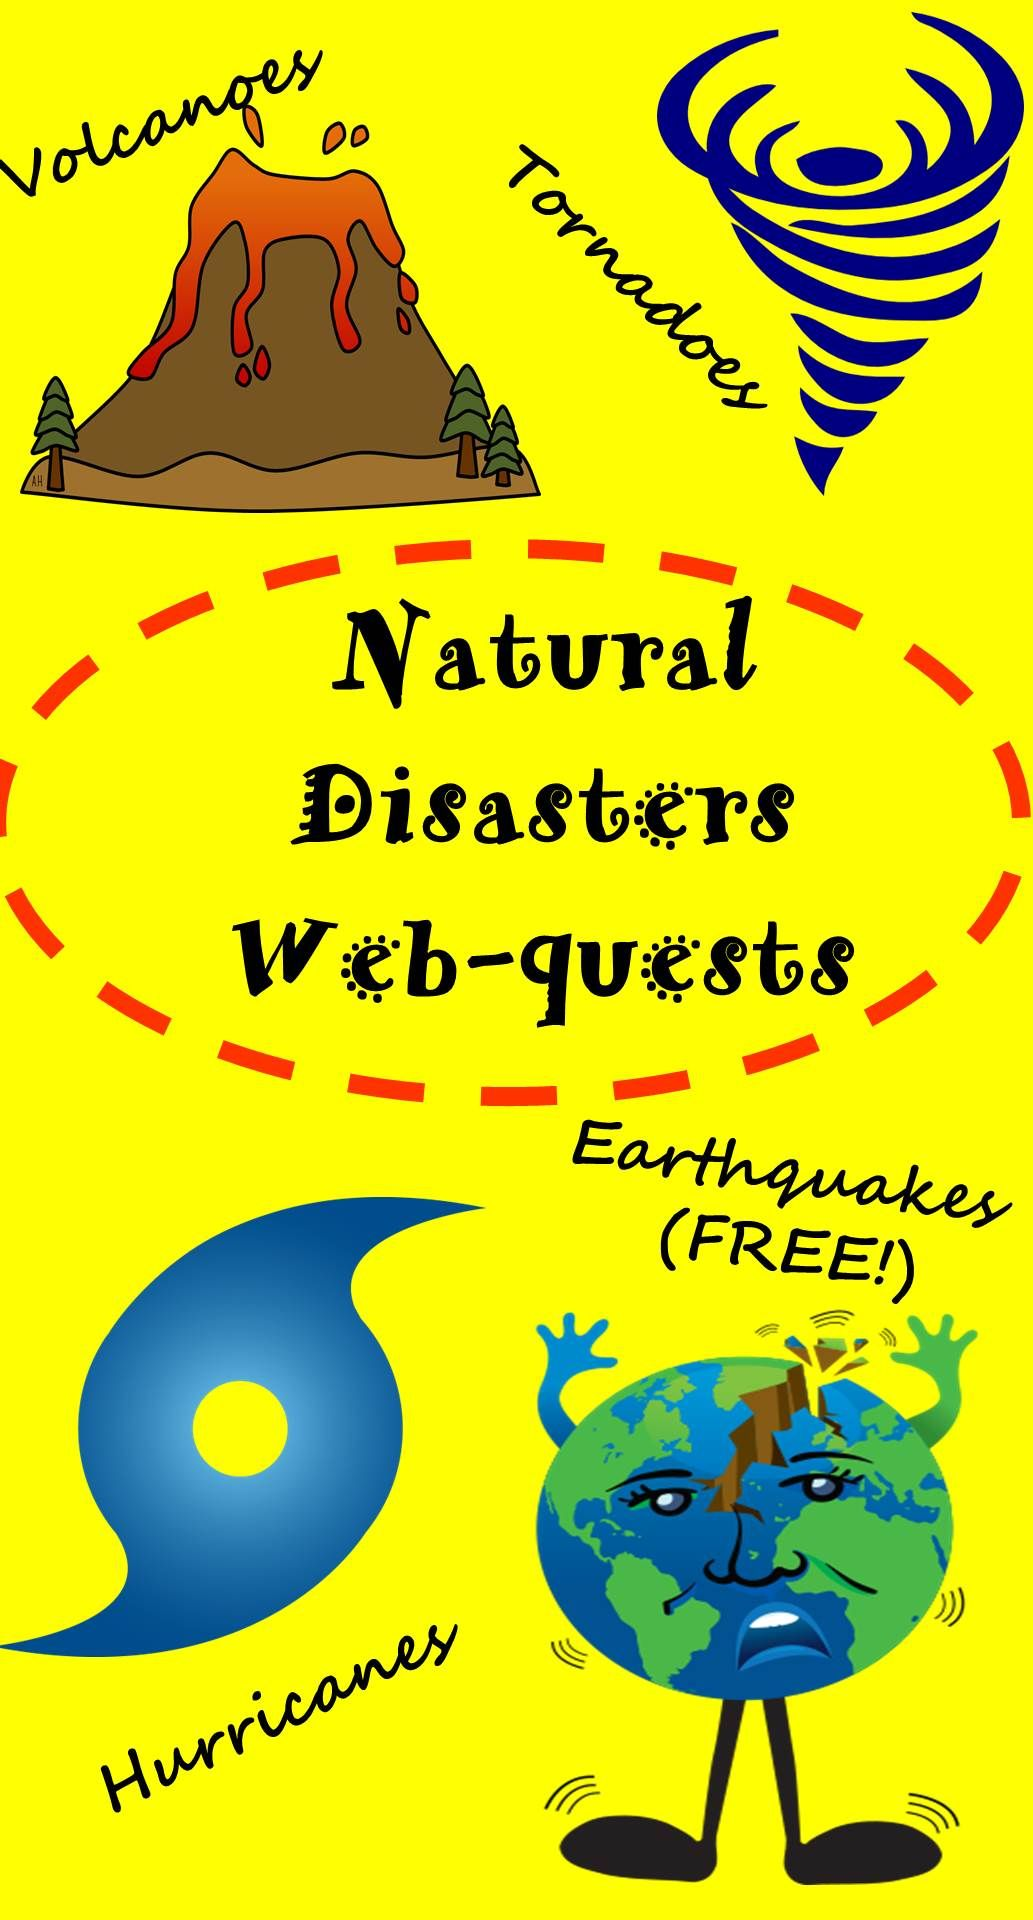 Natural Disaster Webquests